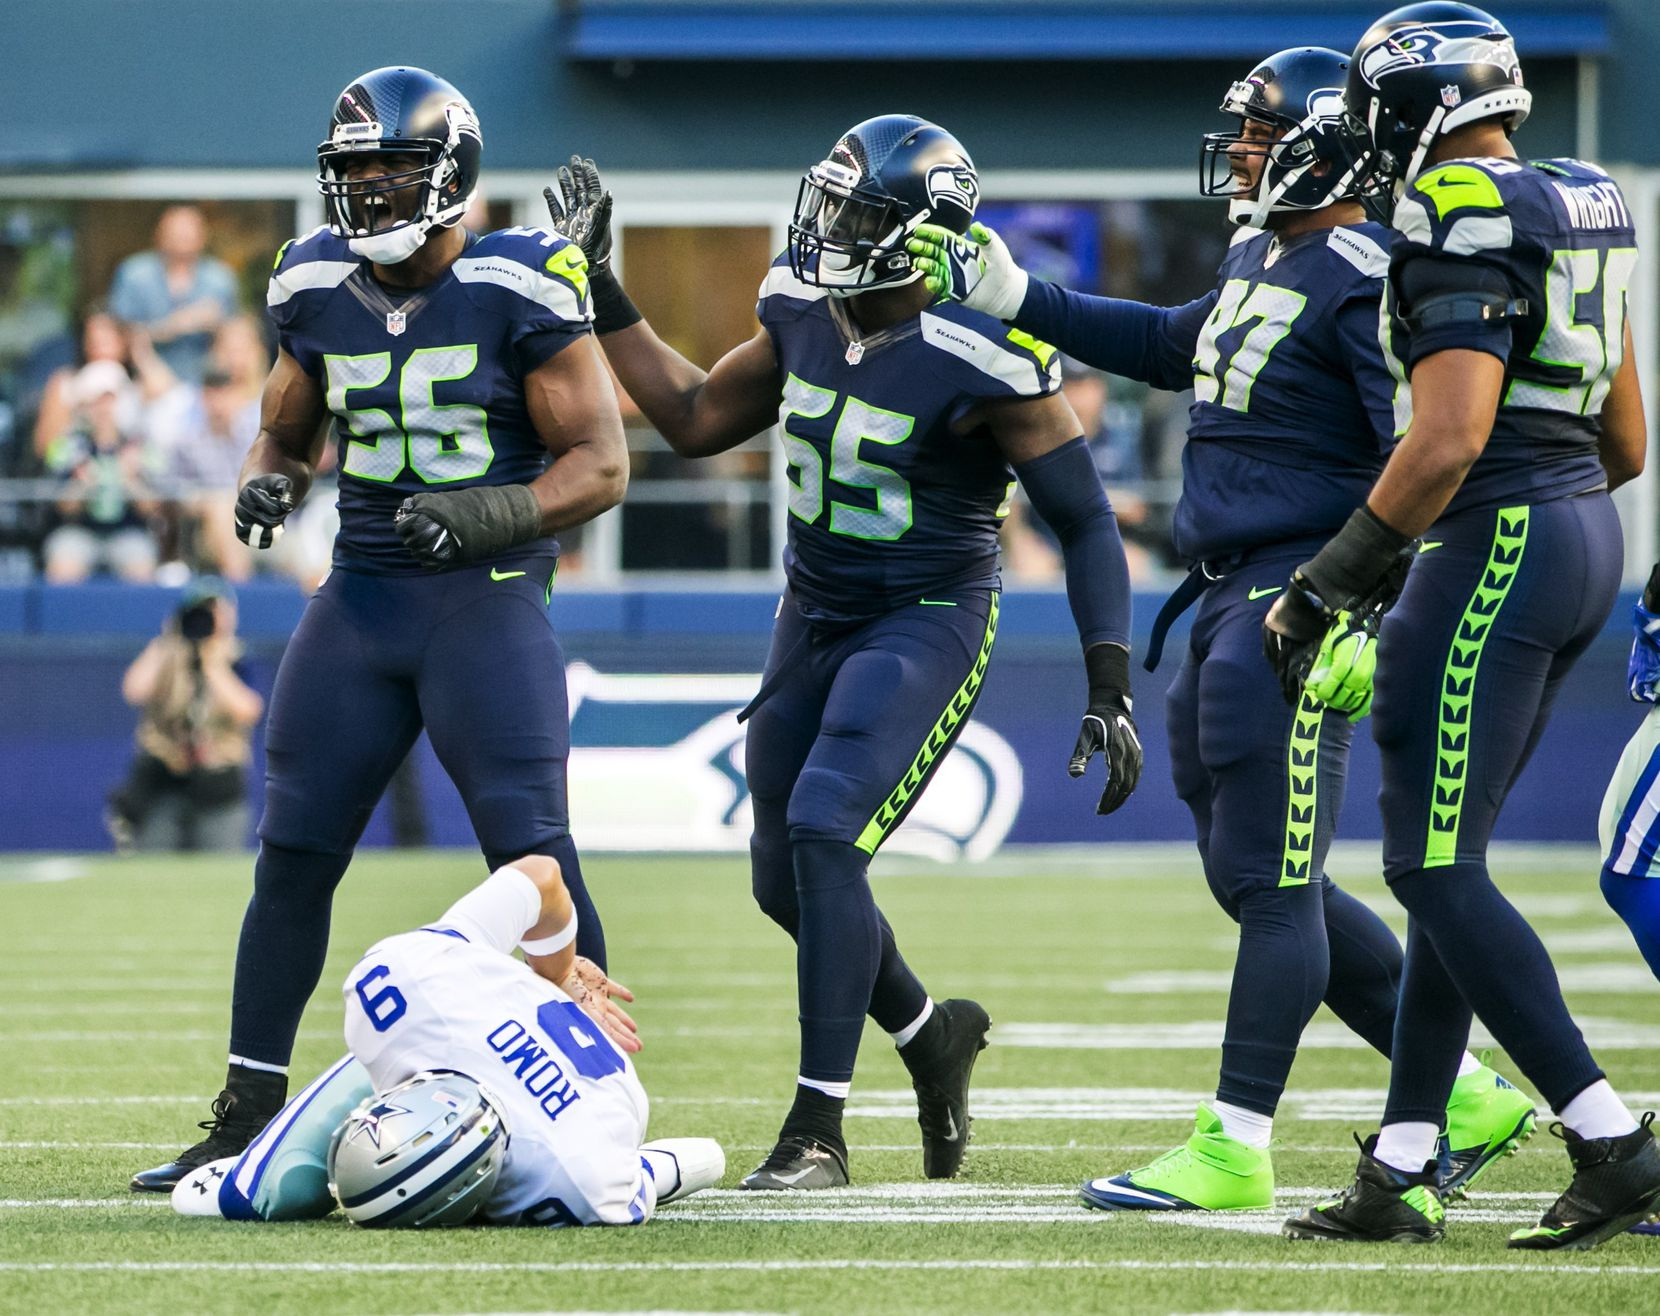 Seahawks defensive lineman Cliff Avril celebrates his sack on Cowboys quarterback Tony Romo on the third play of the game as the Seattle Seahawks take on the Dallas Cowboys for a preseason game at CenturyLink Field in Seattle Thursday August 25, 2016. Romo sustained a broken bone in his back when he was hit from behind by Seattle's Cliff Avrill and slid awkwardly on the third play of a preseason game. (Bettina Hansen/The Seattle Times)